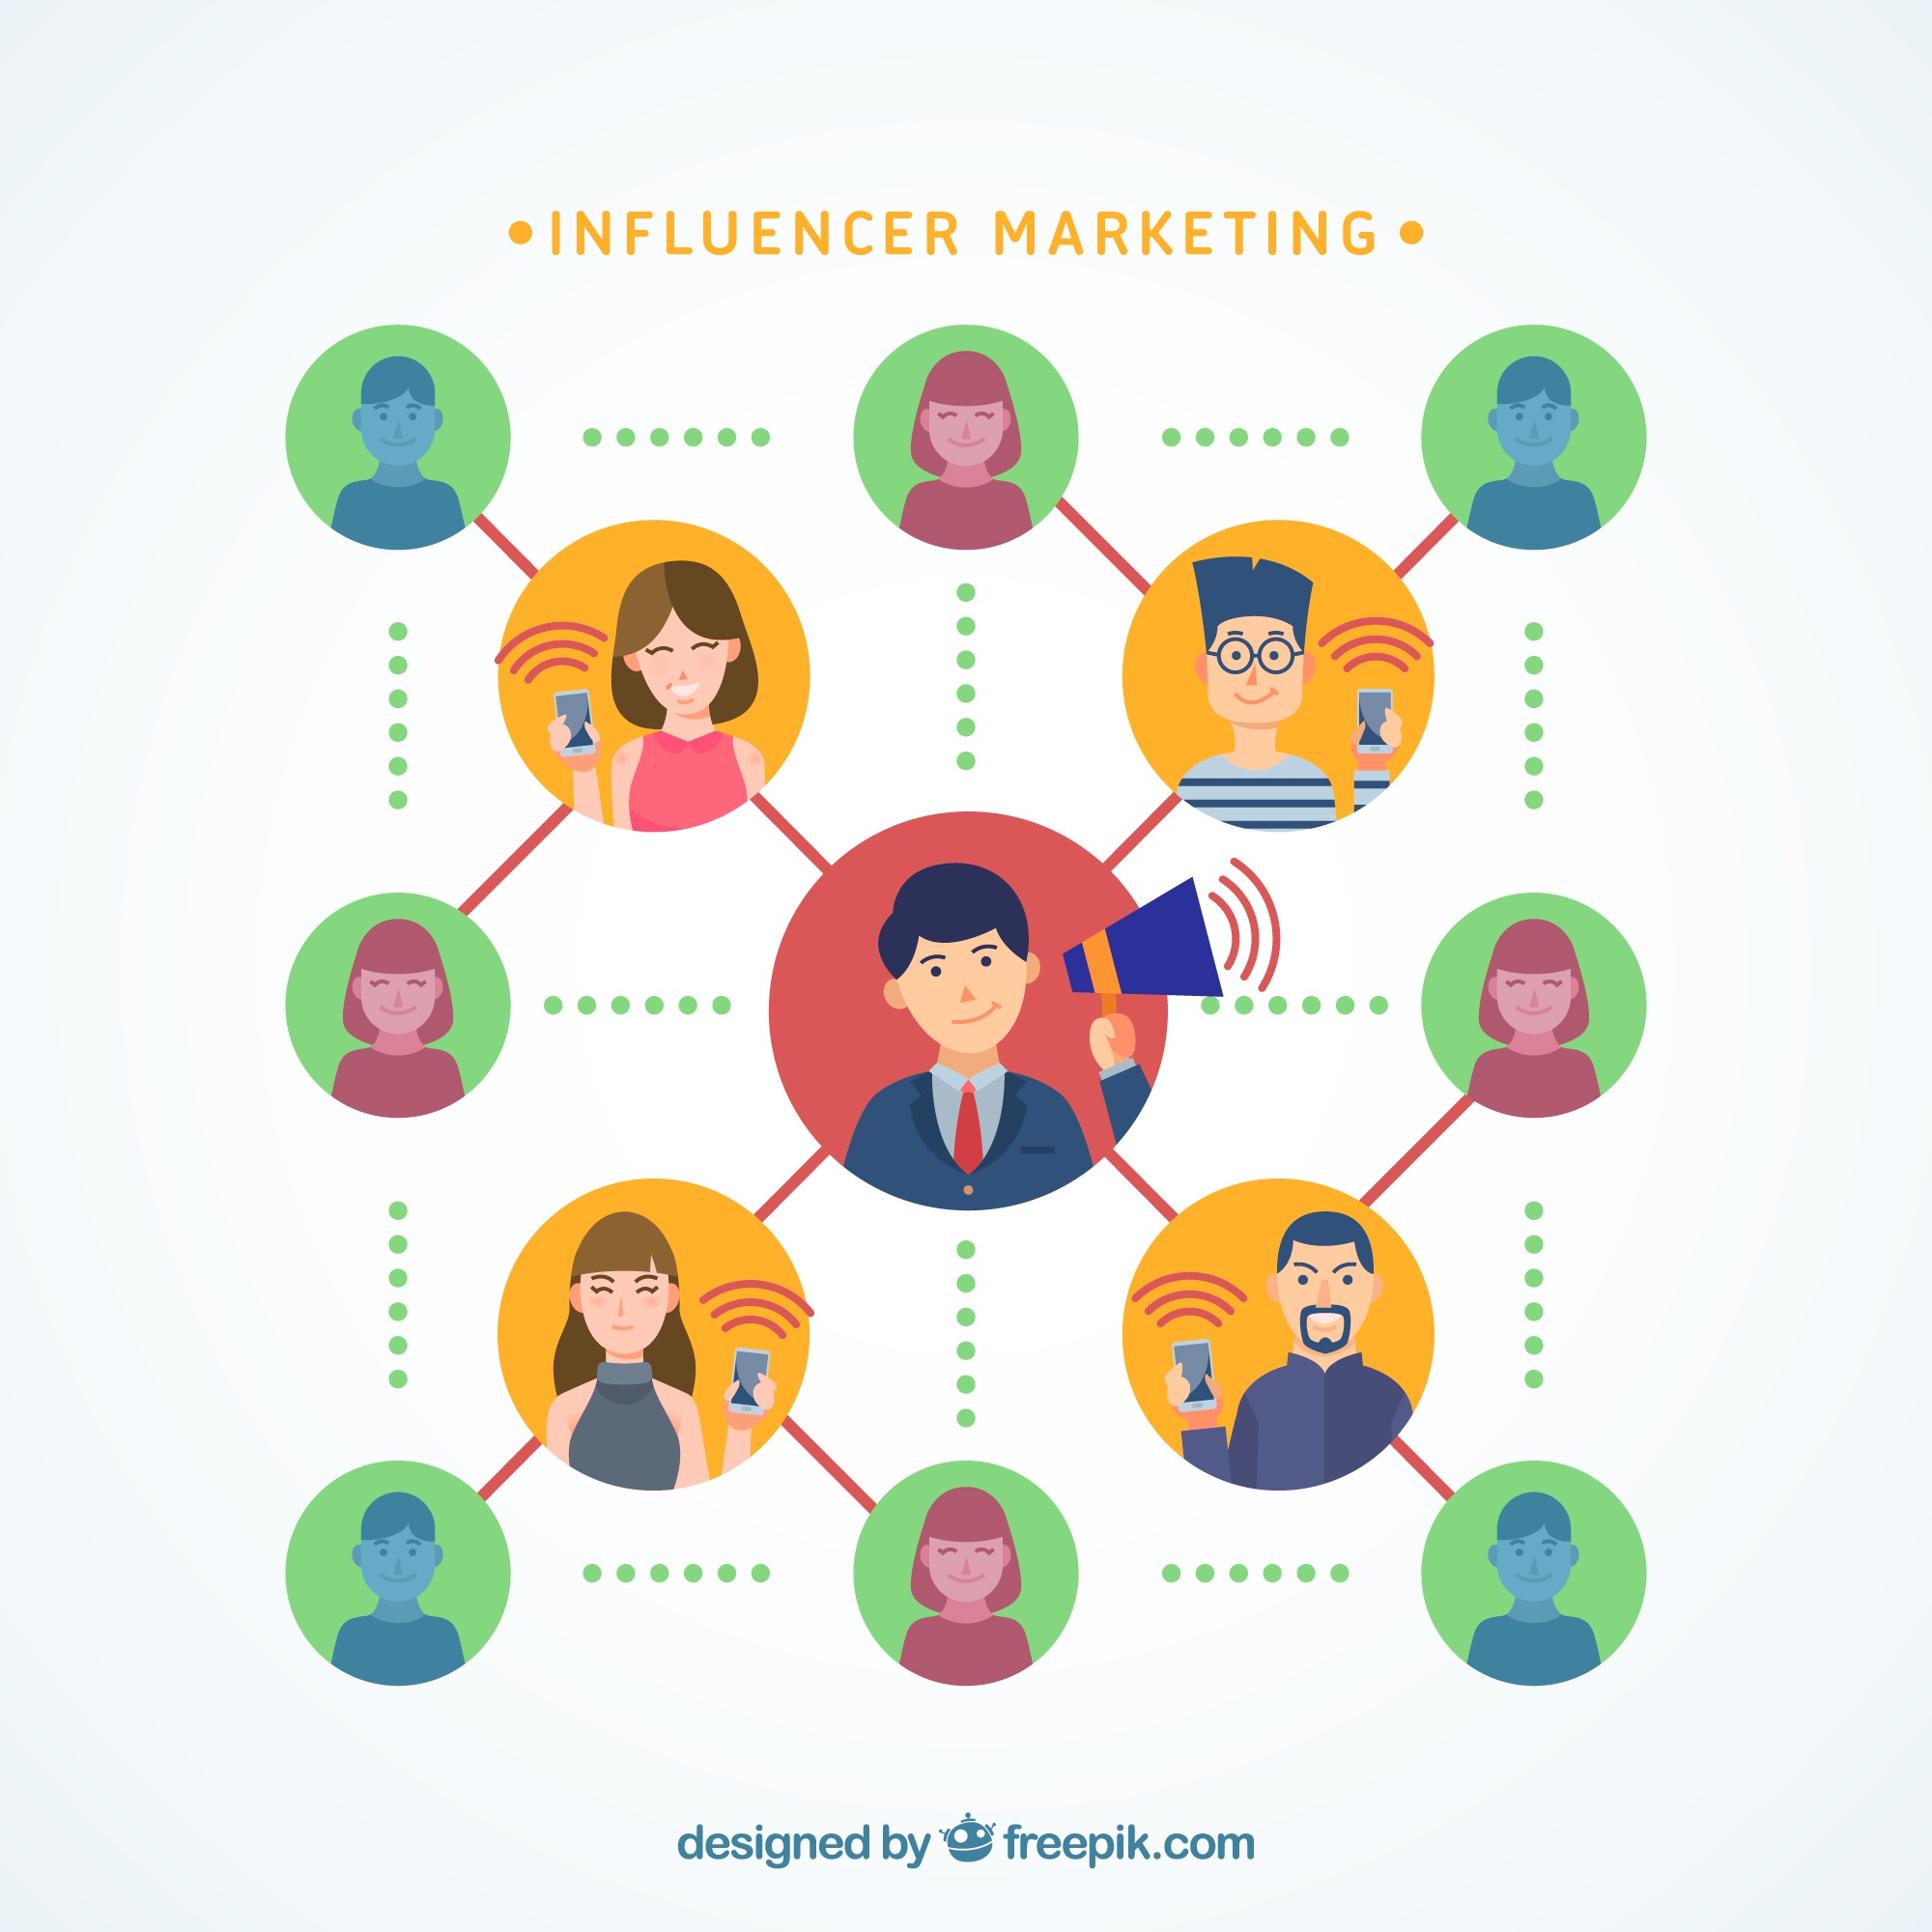 Influence marketing design with connected persons